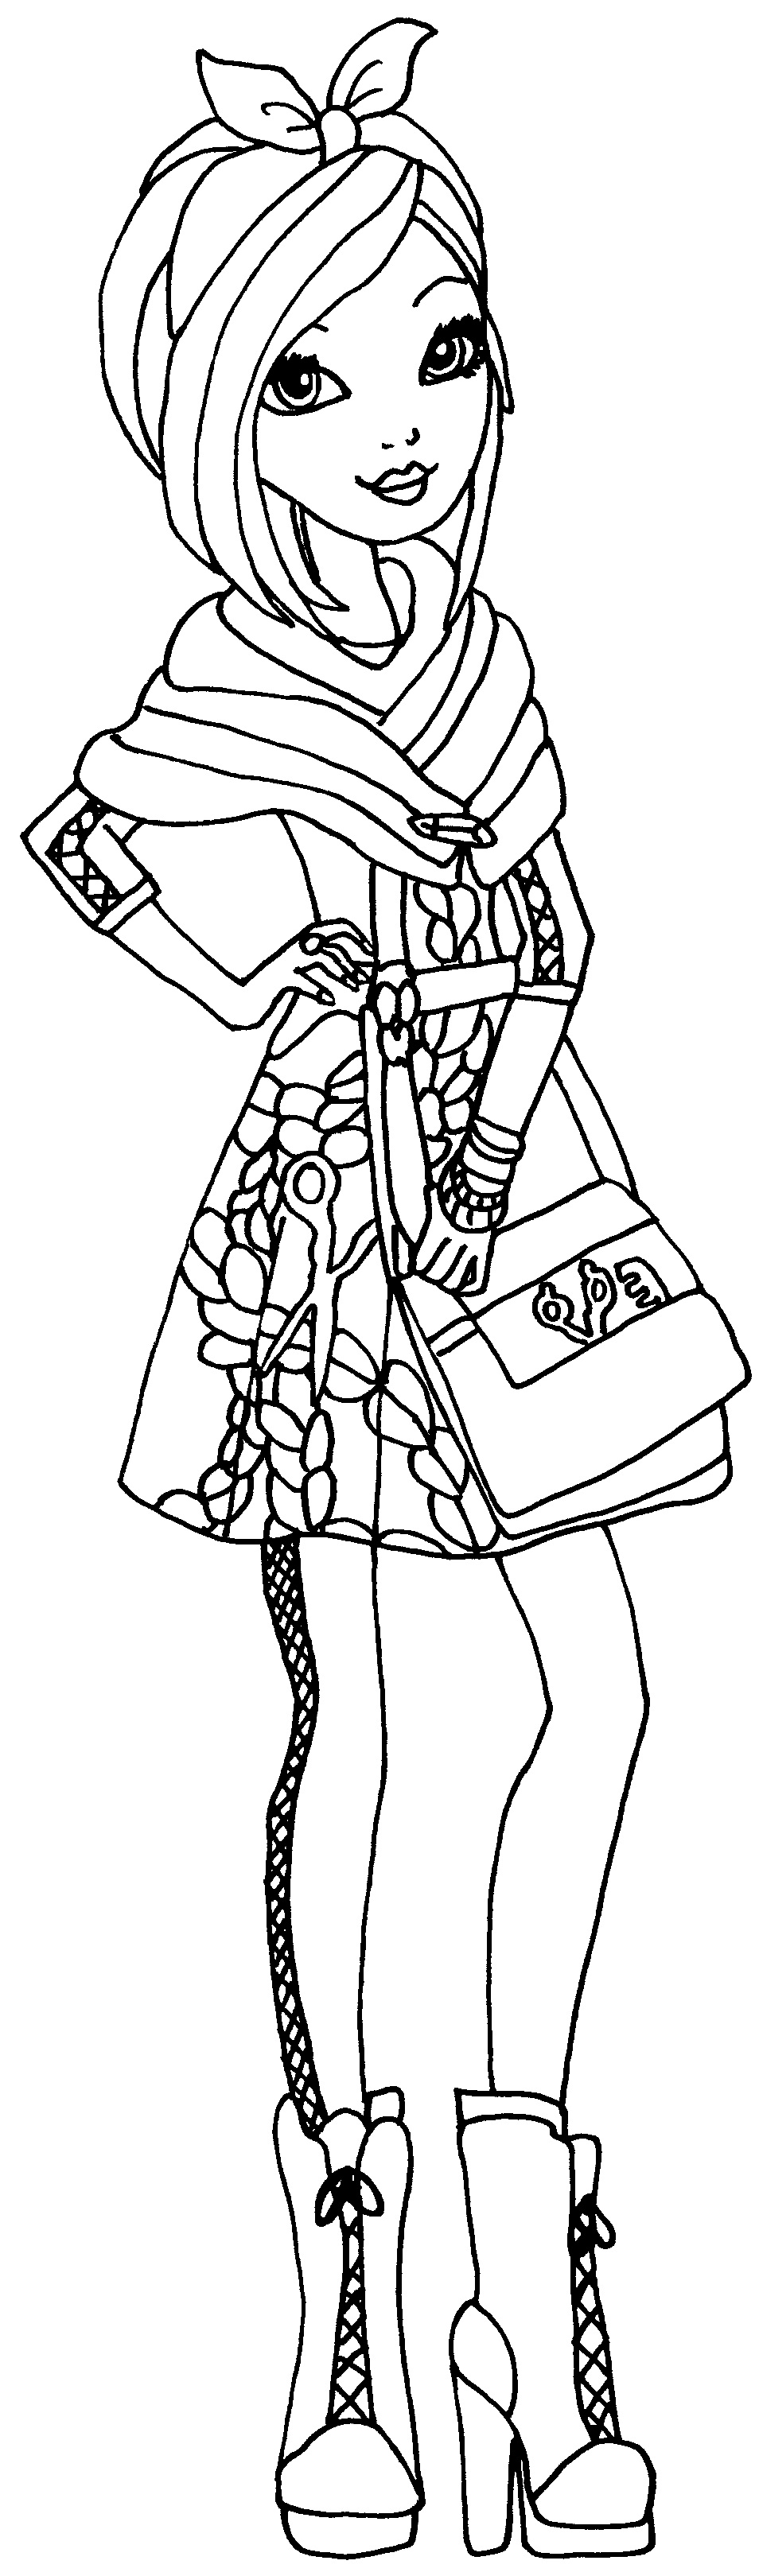 Ever after high coloring pictures - Ever After High Coloring Pictures 32